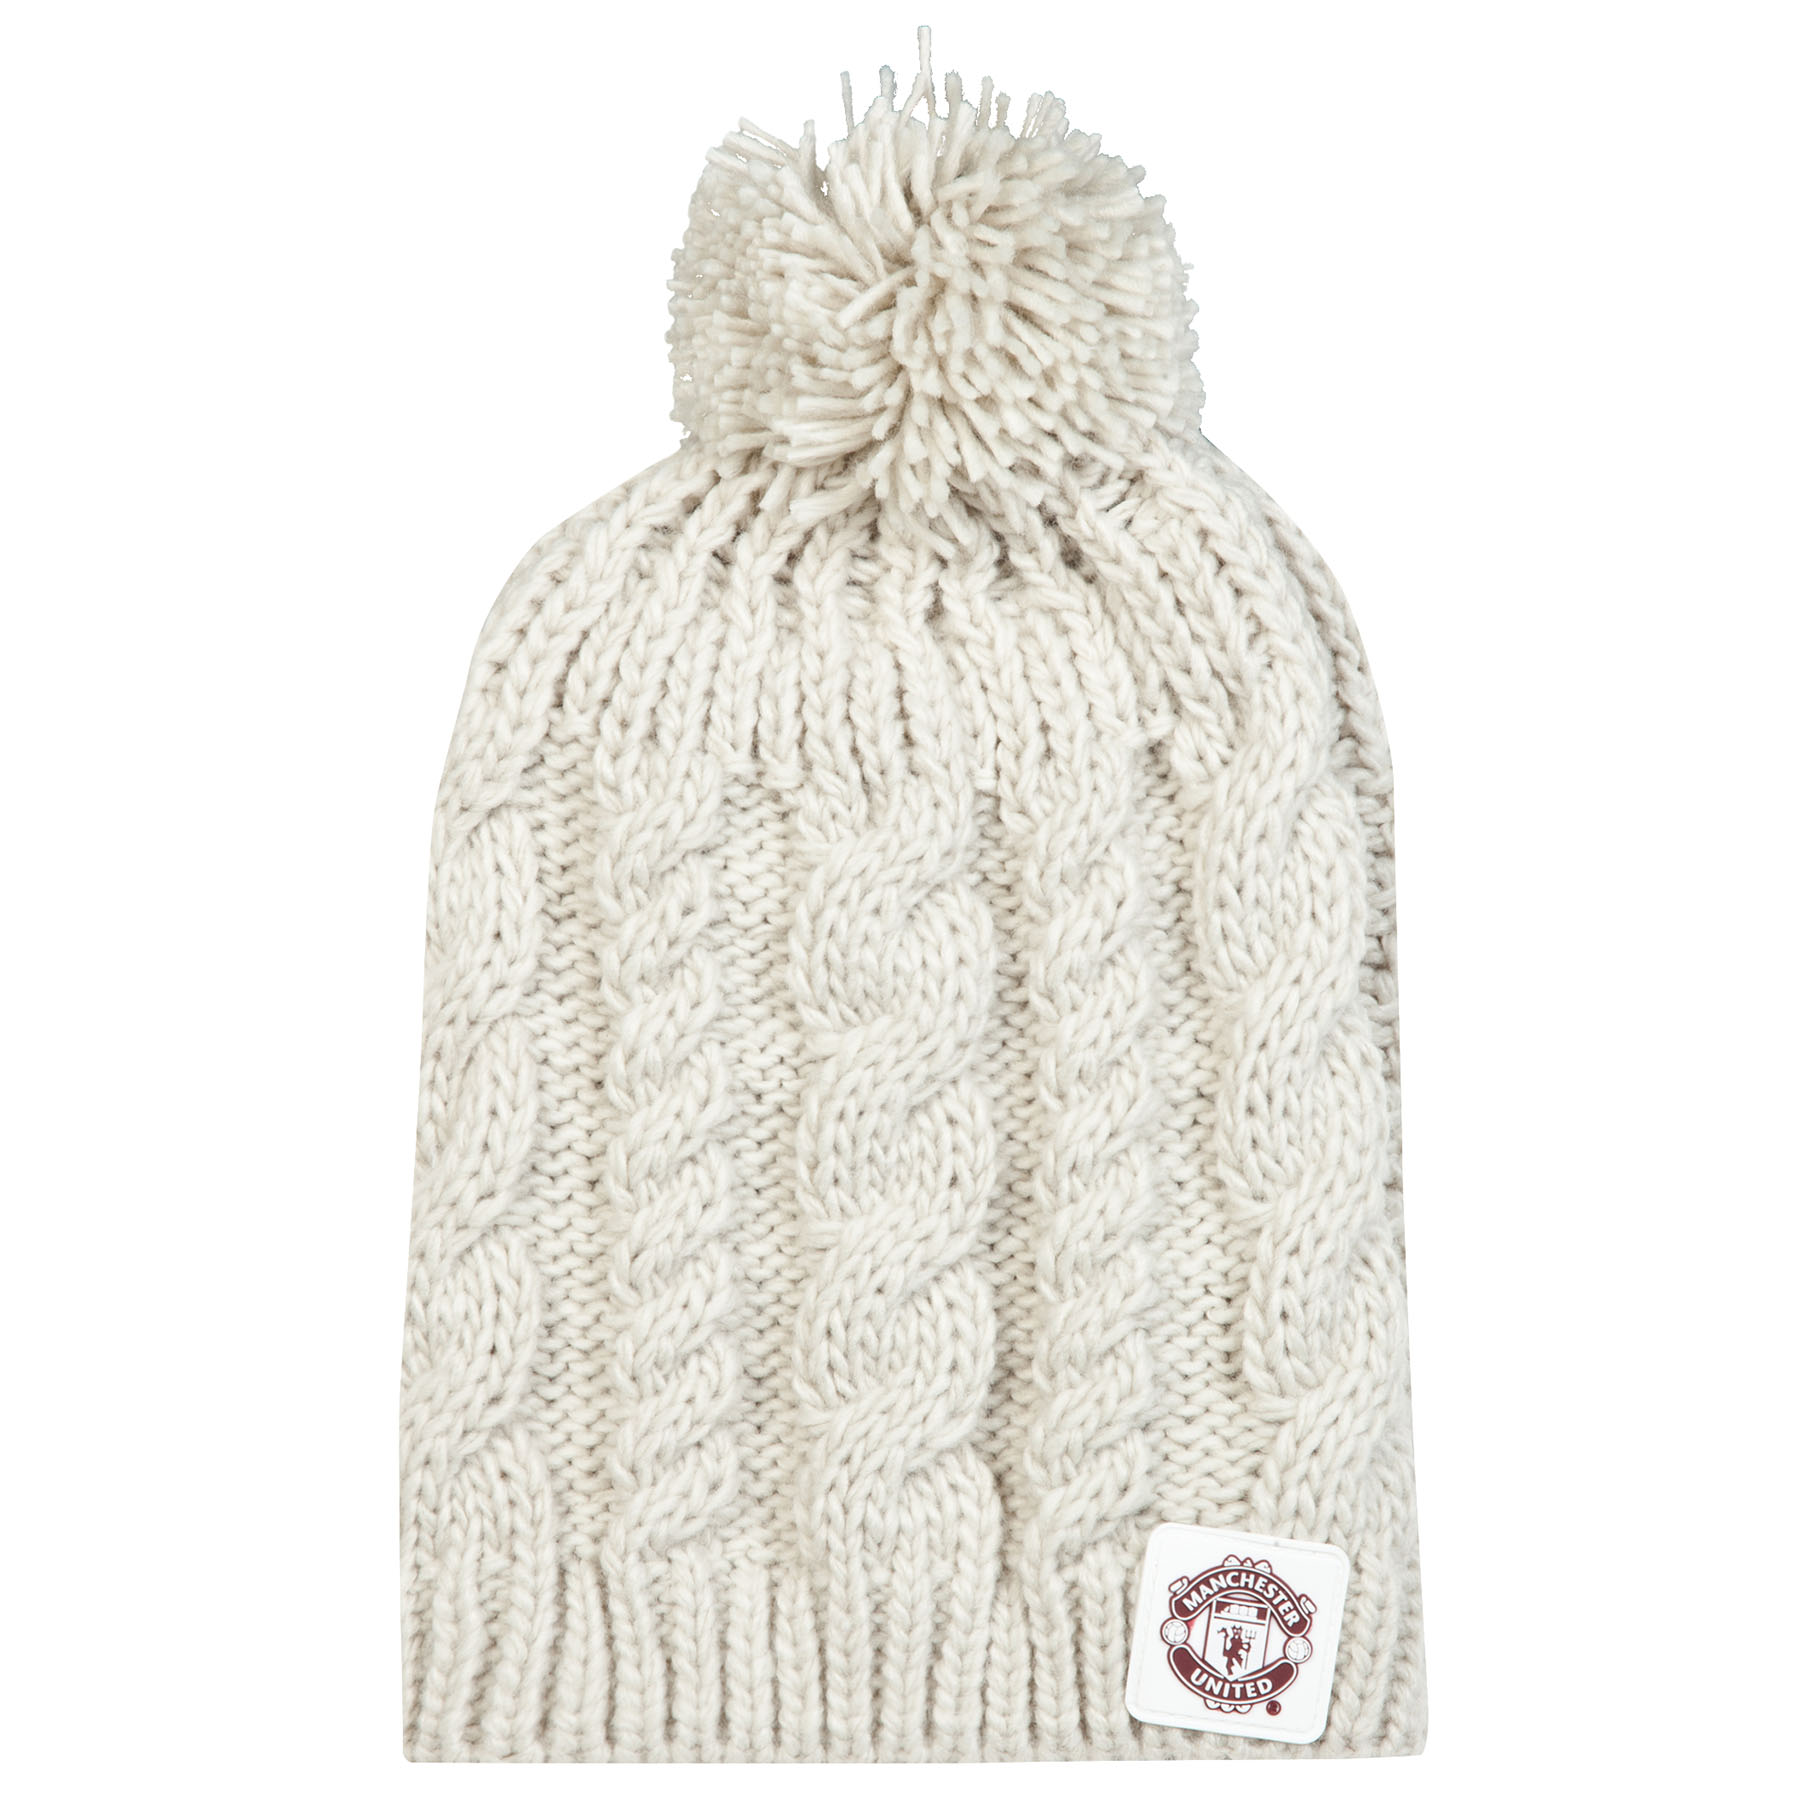 Manchester United Goalie Beanie Hat - Cream - Womens